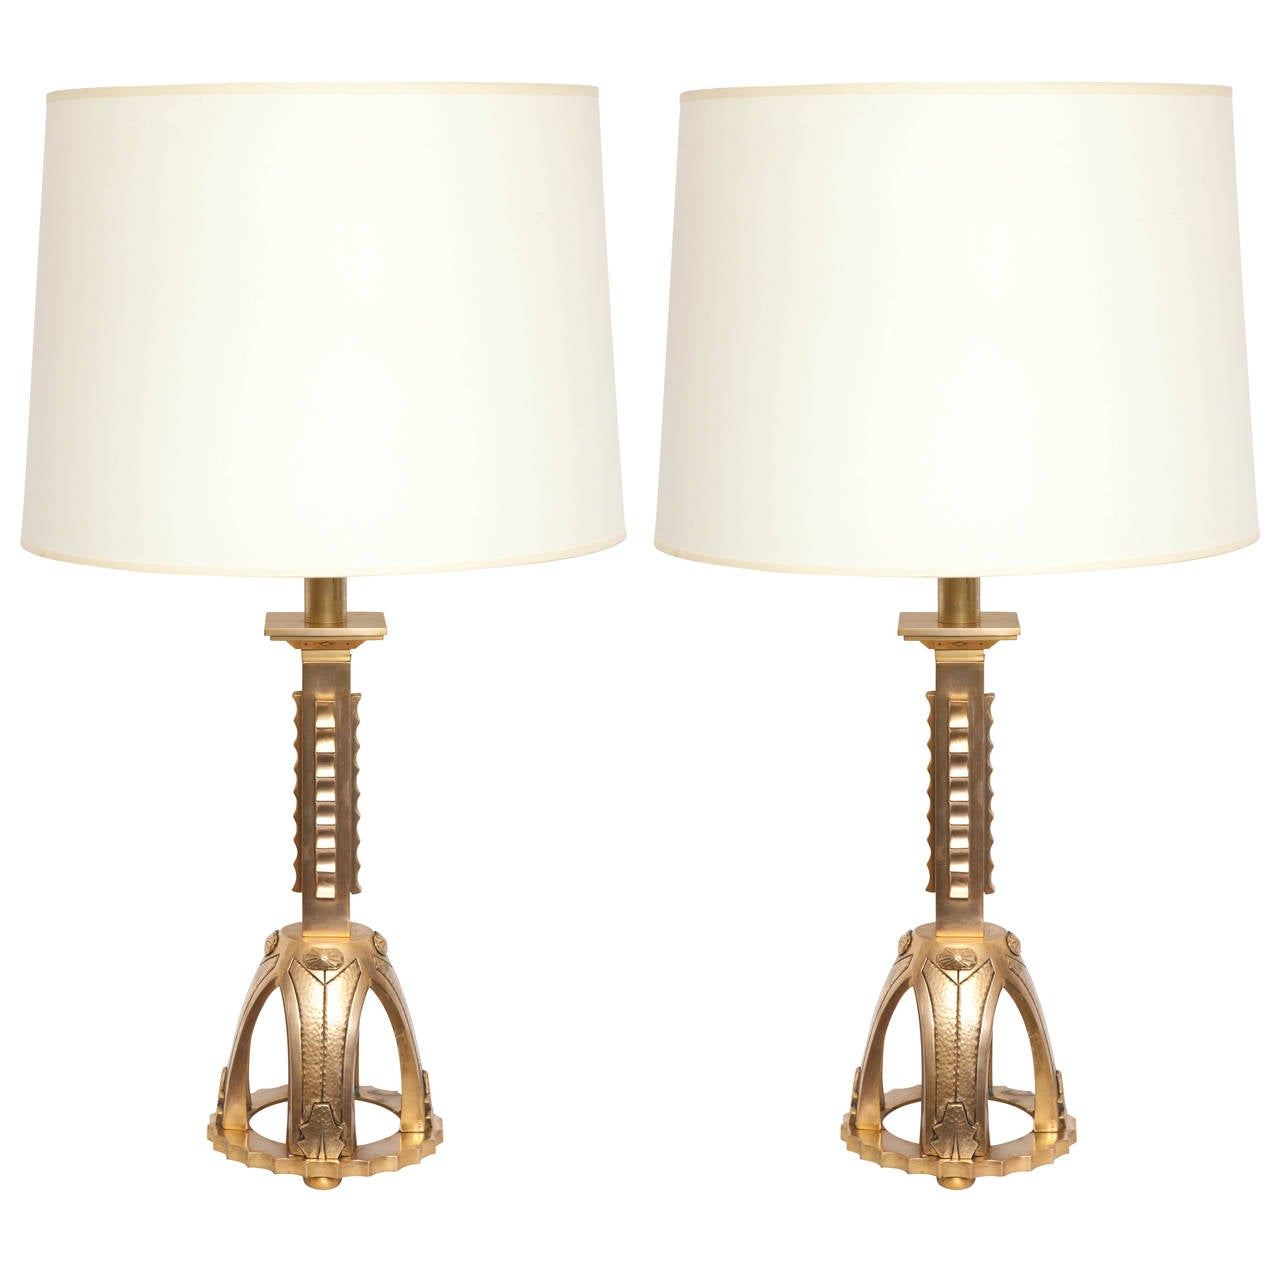 Pair of 1930s French Art Deco Gilt Bronze Table Lamps